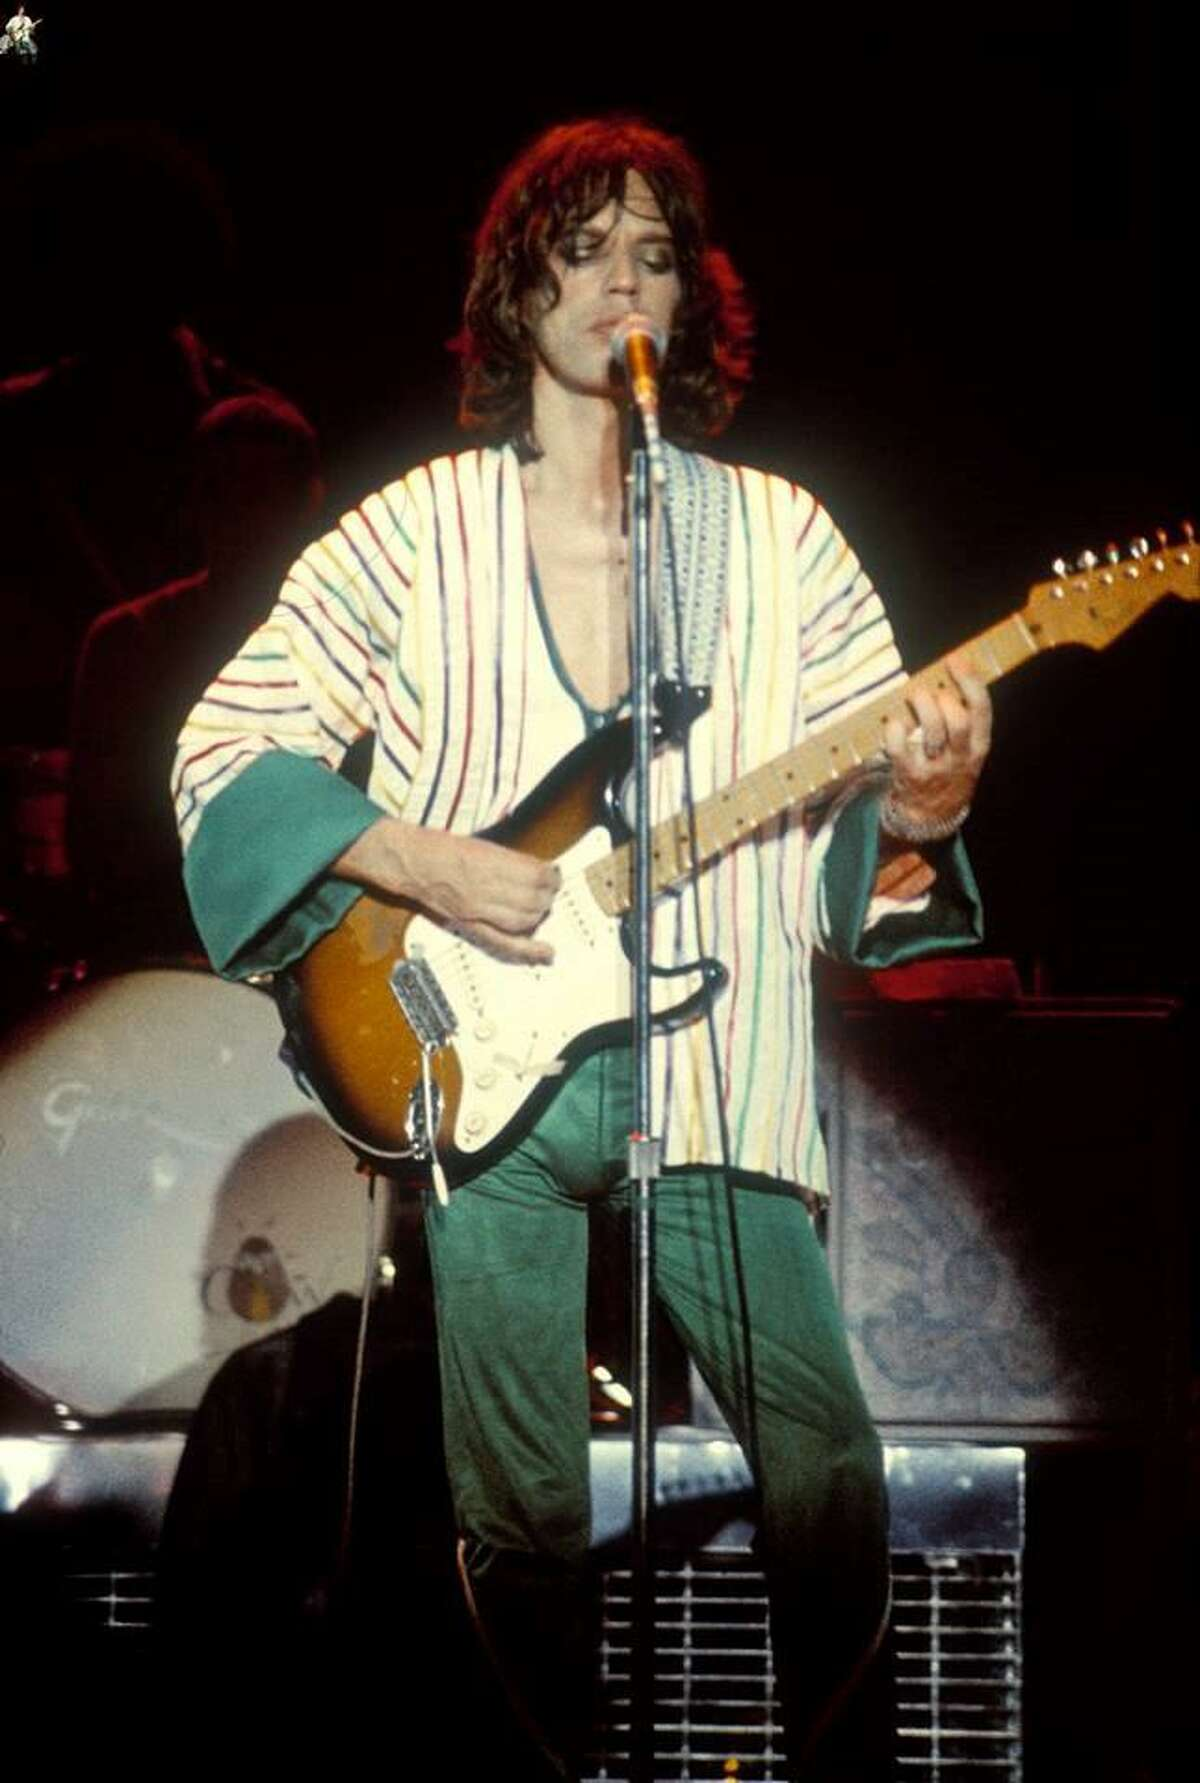 Mick Jagger plays electric guitar at a Rolling Stones concert on June 4, 1975, at the HemisFair Arena.